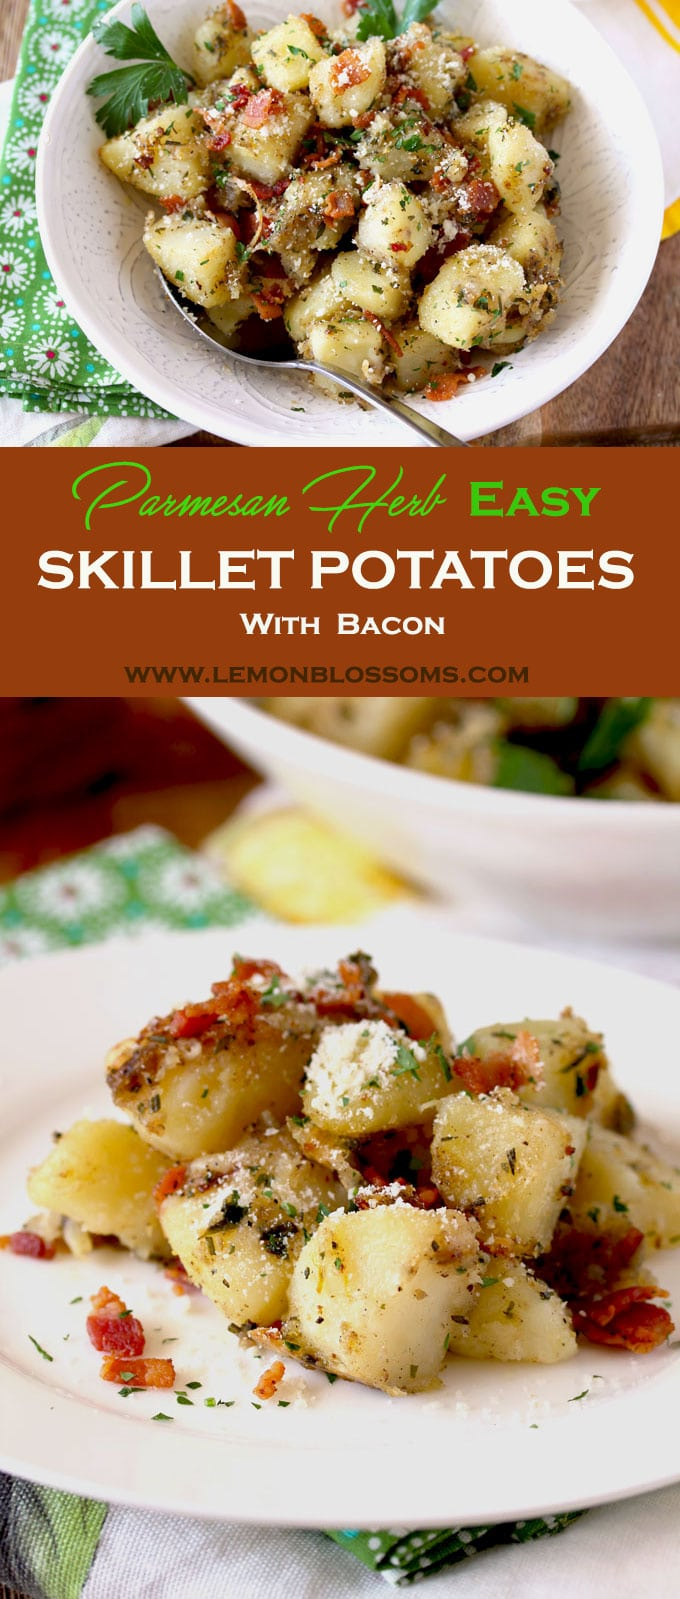 Soft And Velvety In The Middle With Browned Crispy Edges These Parmesan Herb Easy Skillet Potatoes